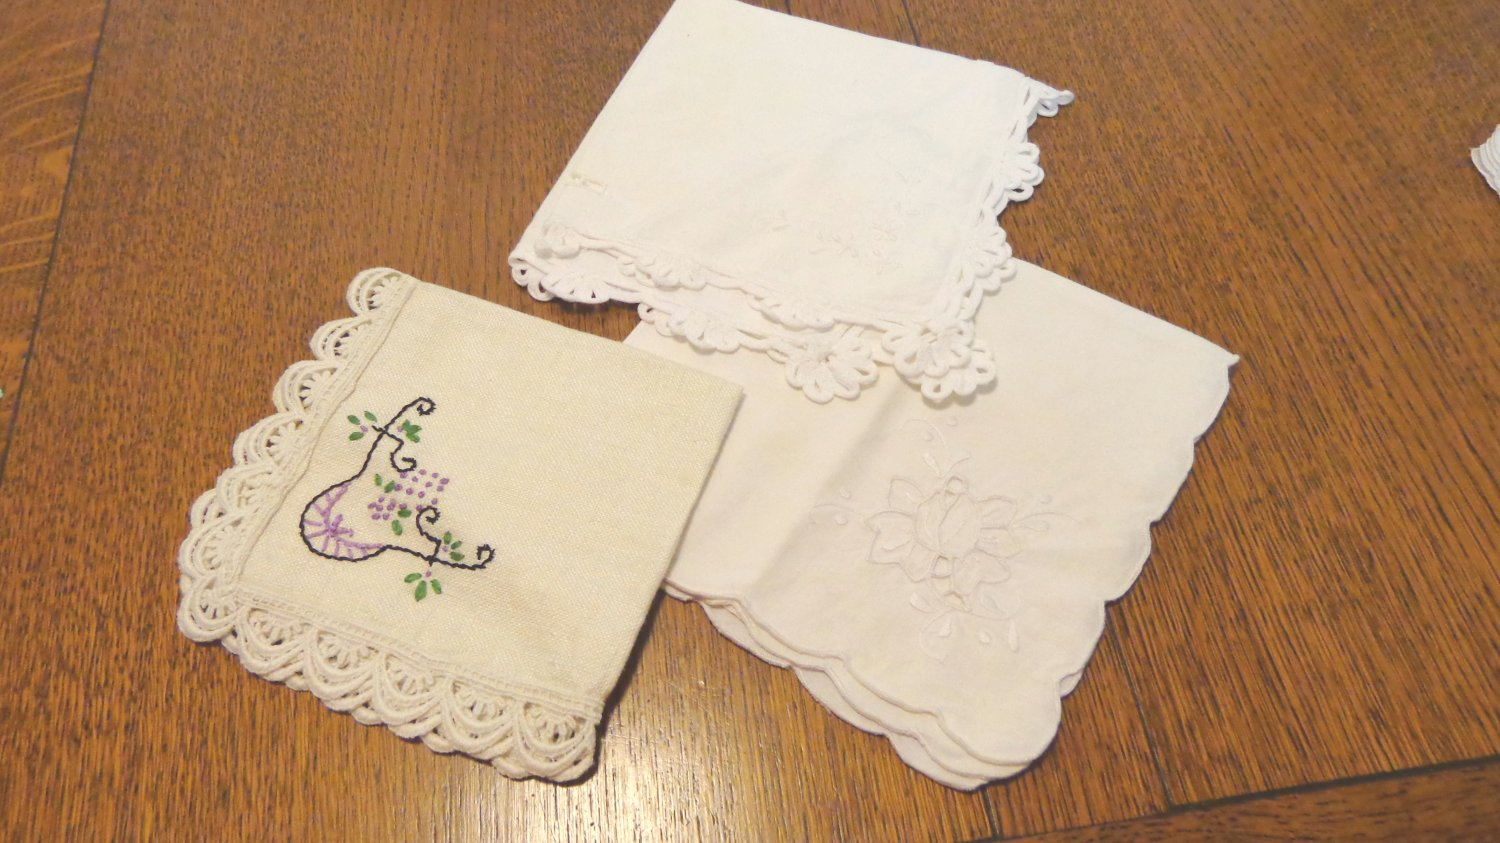 Three single embroidered napkins cotton and linen lace edging vintage hc2382